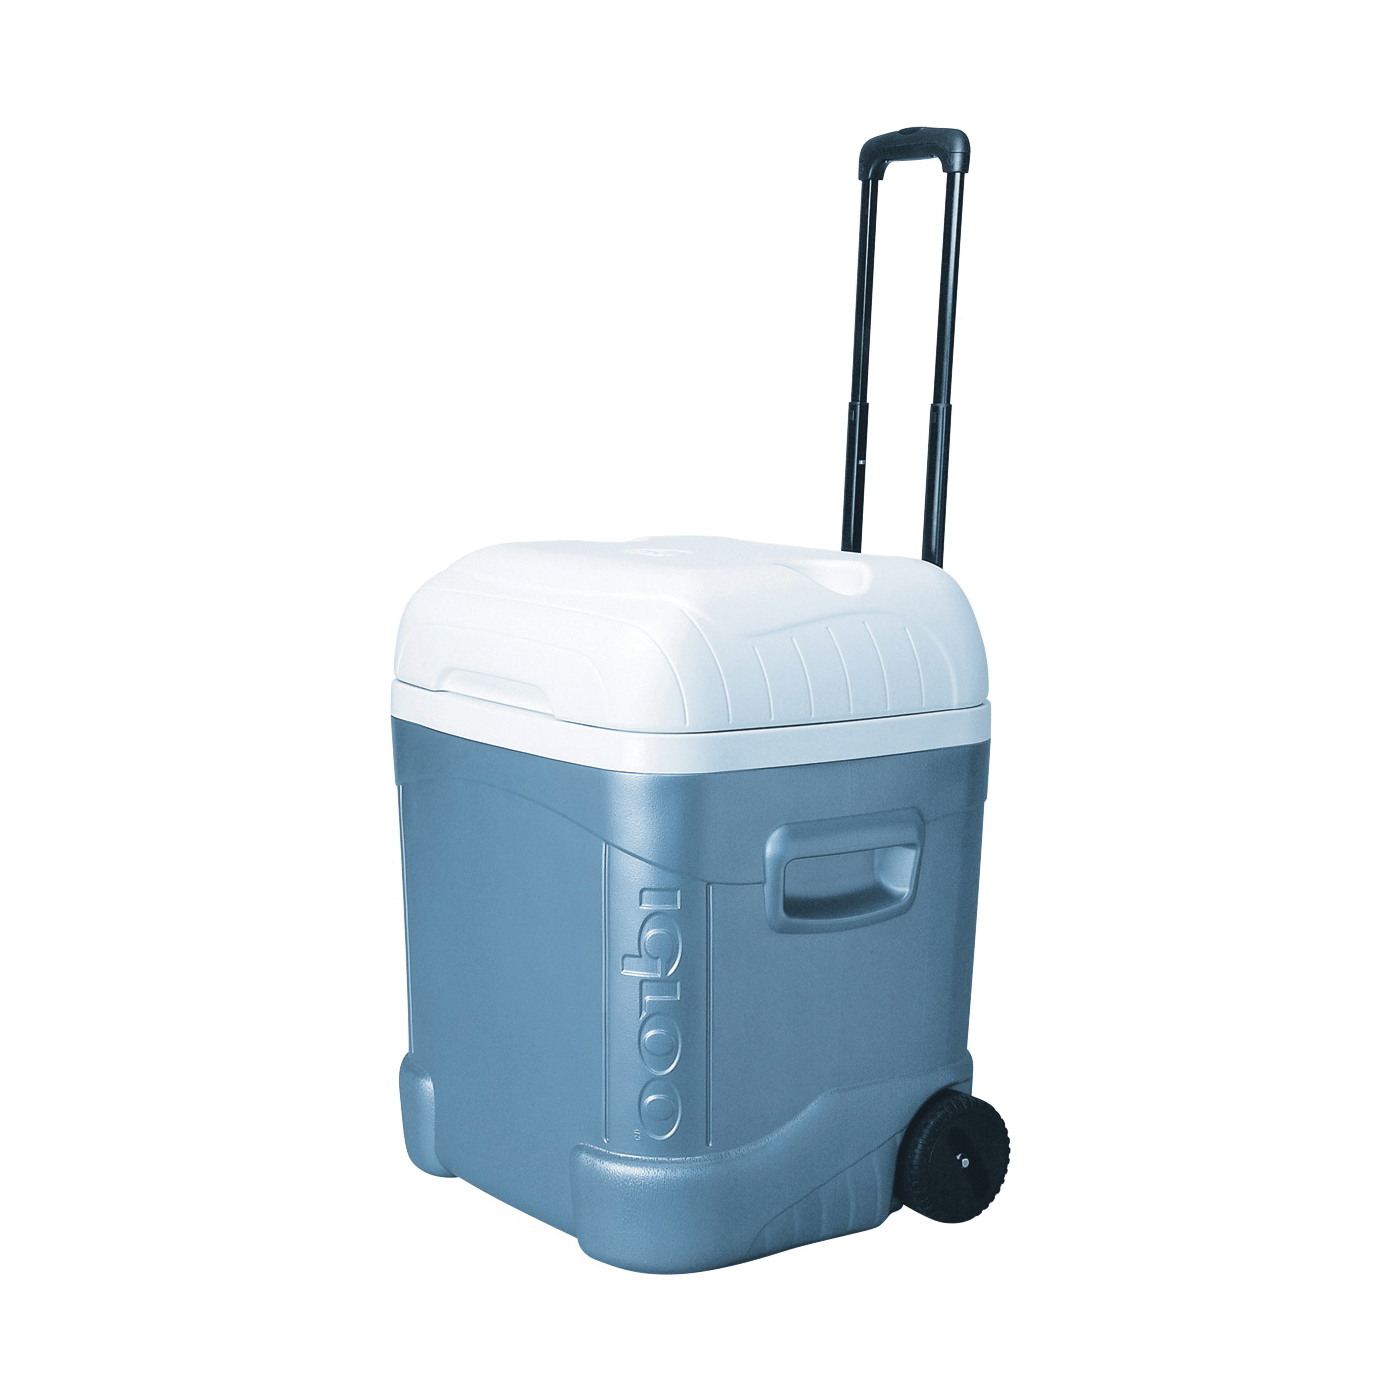 Picture of IGLOO 34701 Ice Chest, 70 qt Cooler, Plastic, Blue/White